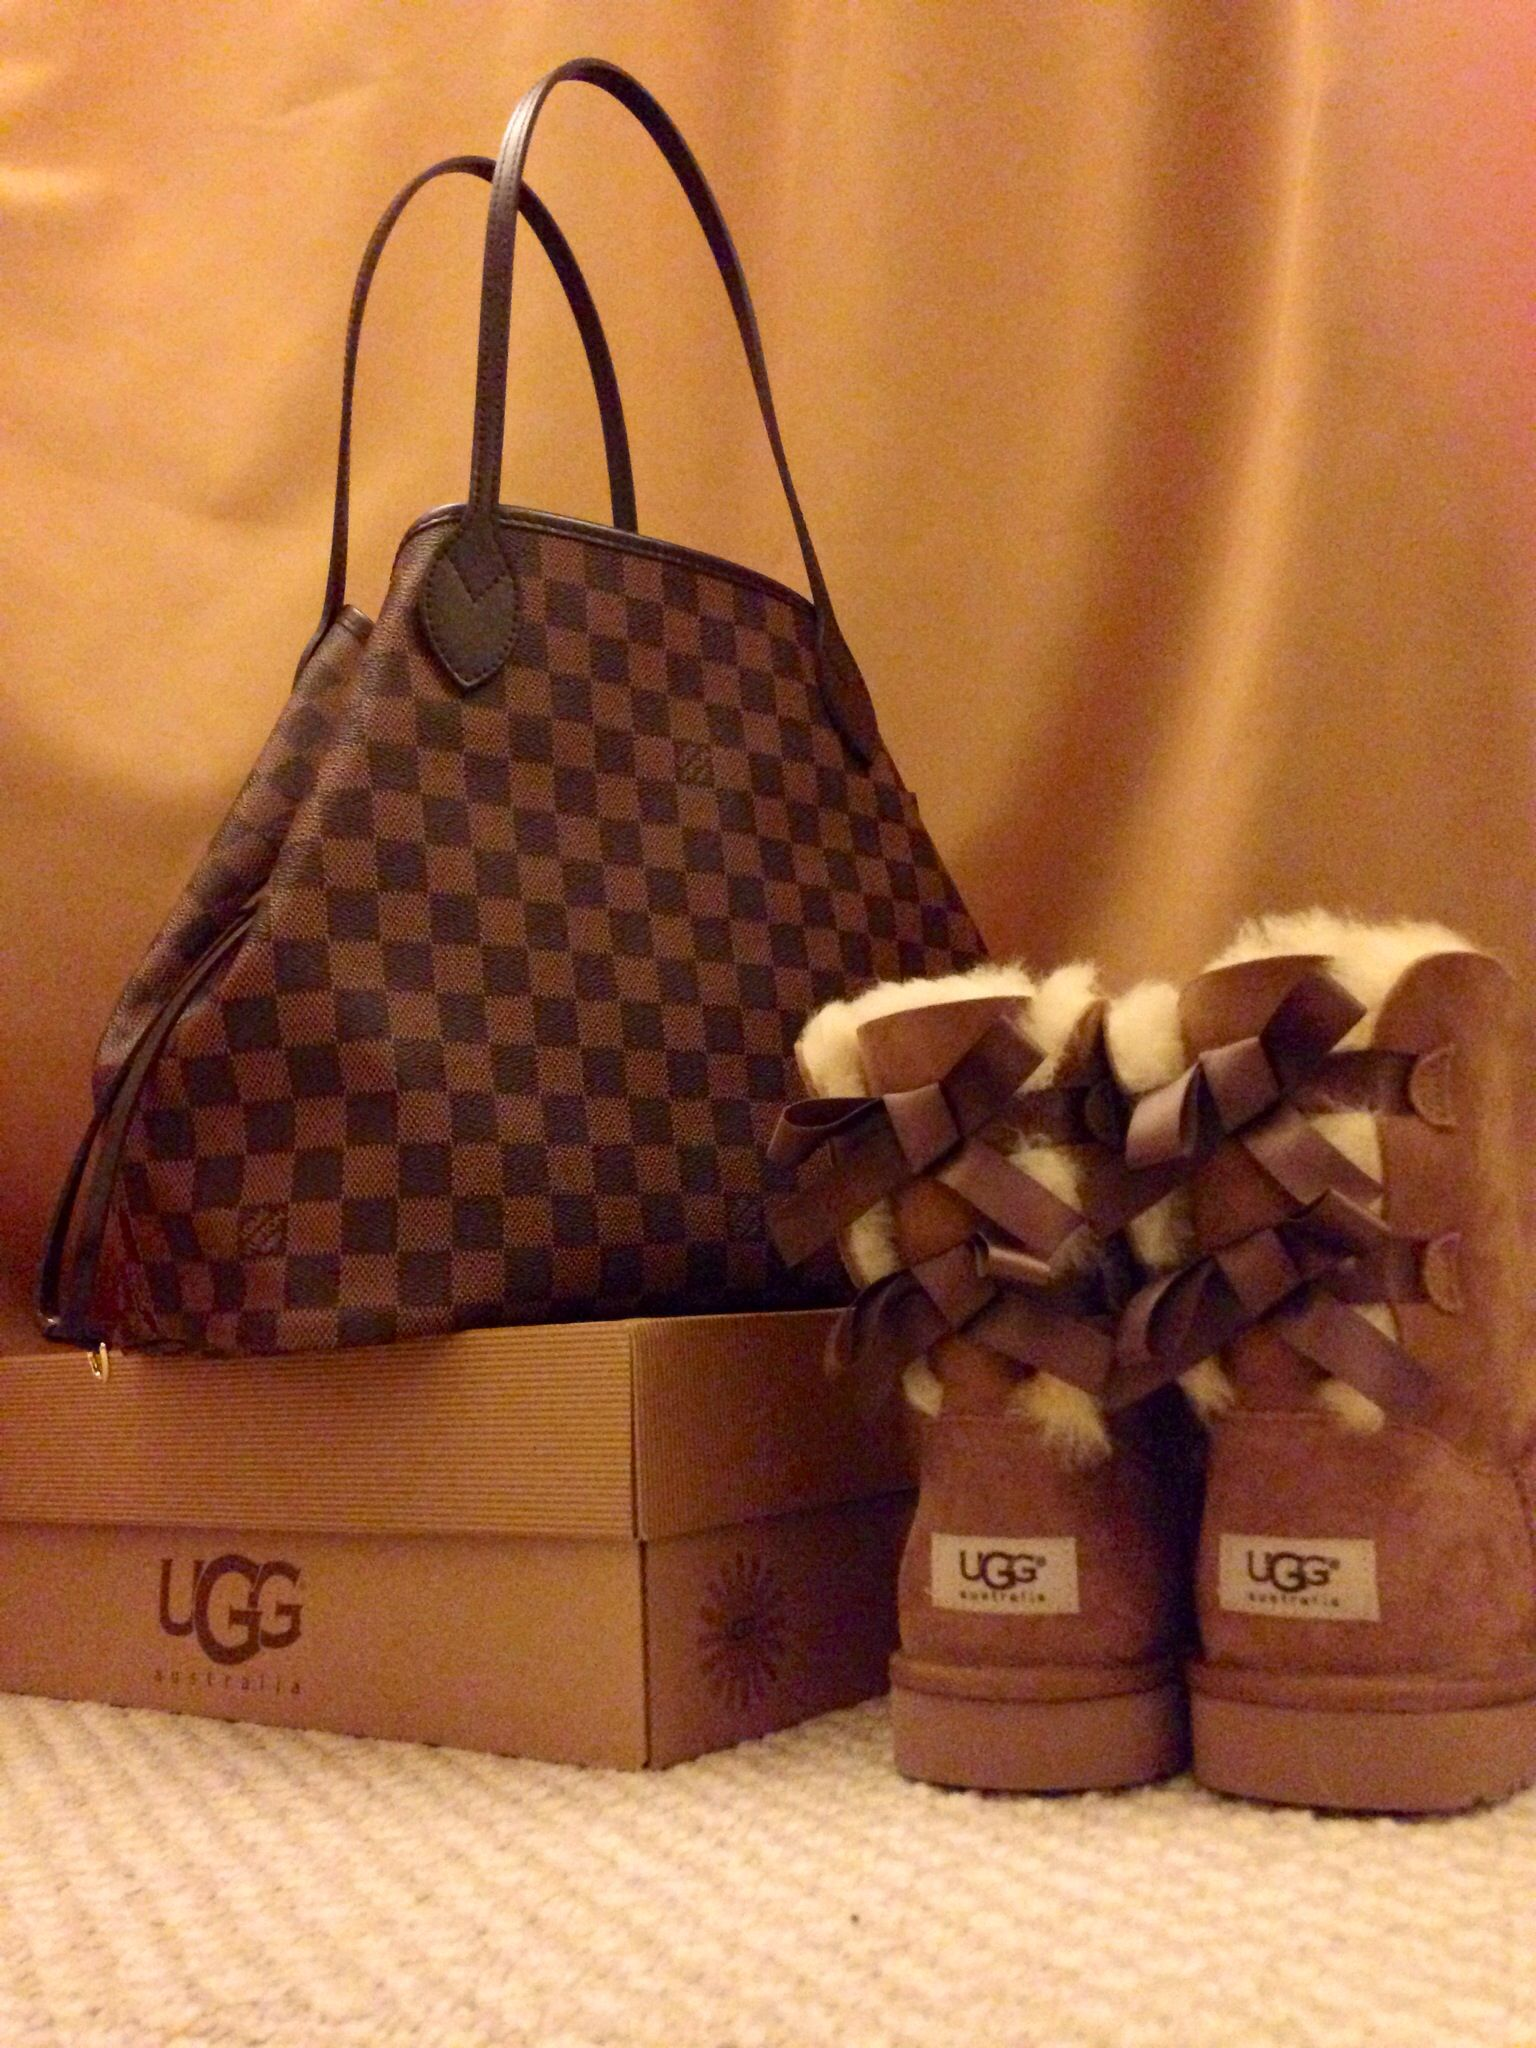 c5306e027a0a My two loved items at the moment  Louis Vuitton Neverfull Damier Ebene MM    Uggs Bailey Bows in Chestnut.